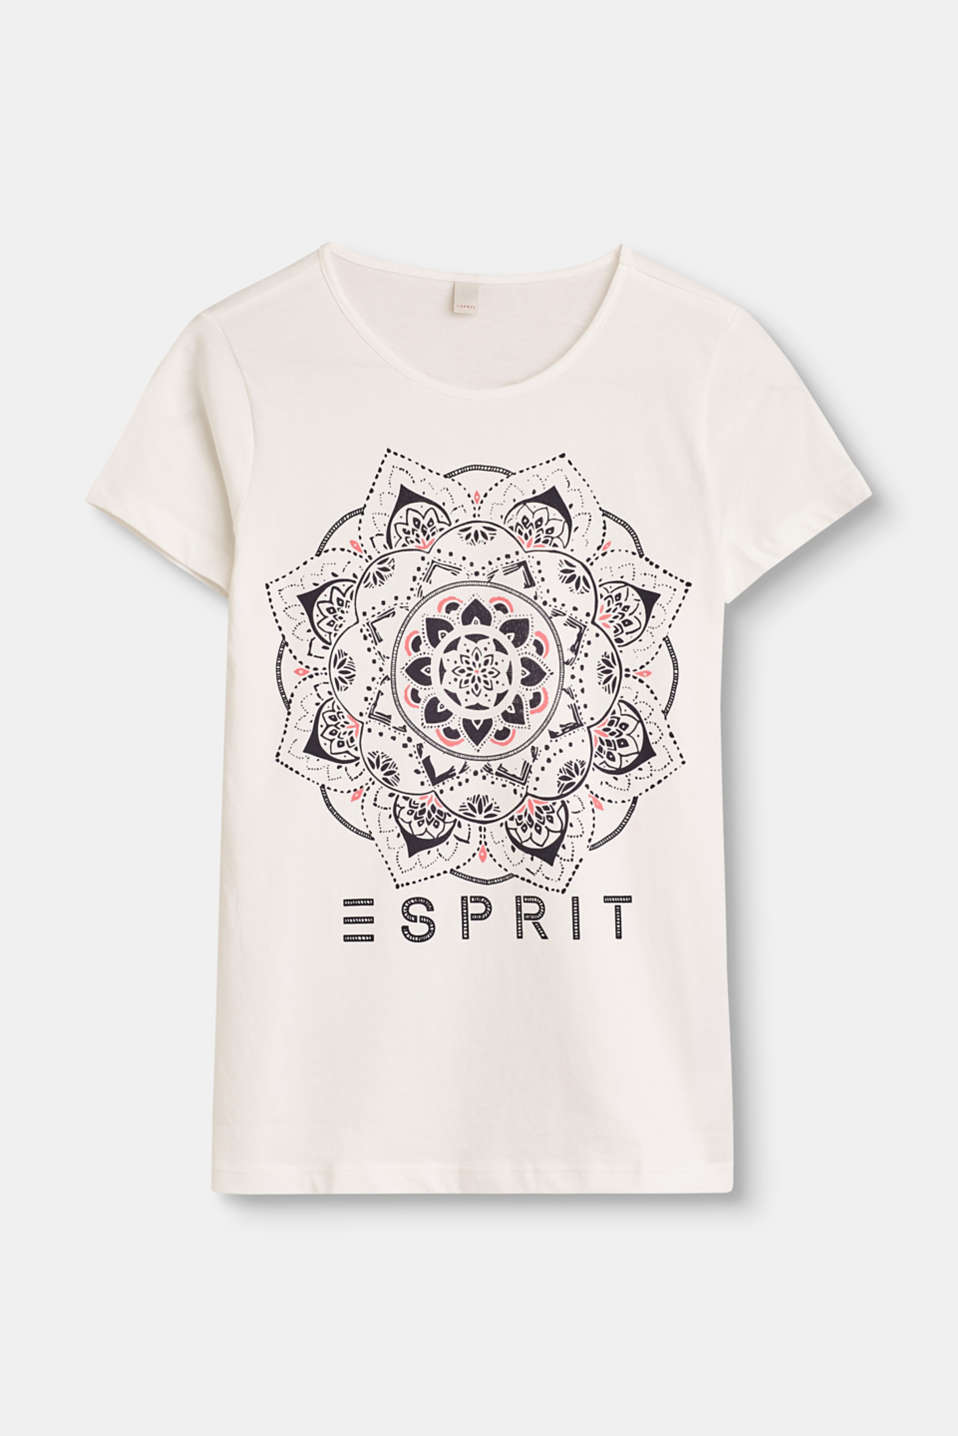 Esprit - T-shirt with a mandala print, 100% cotton